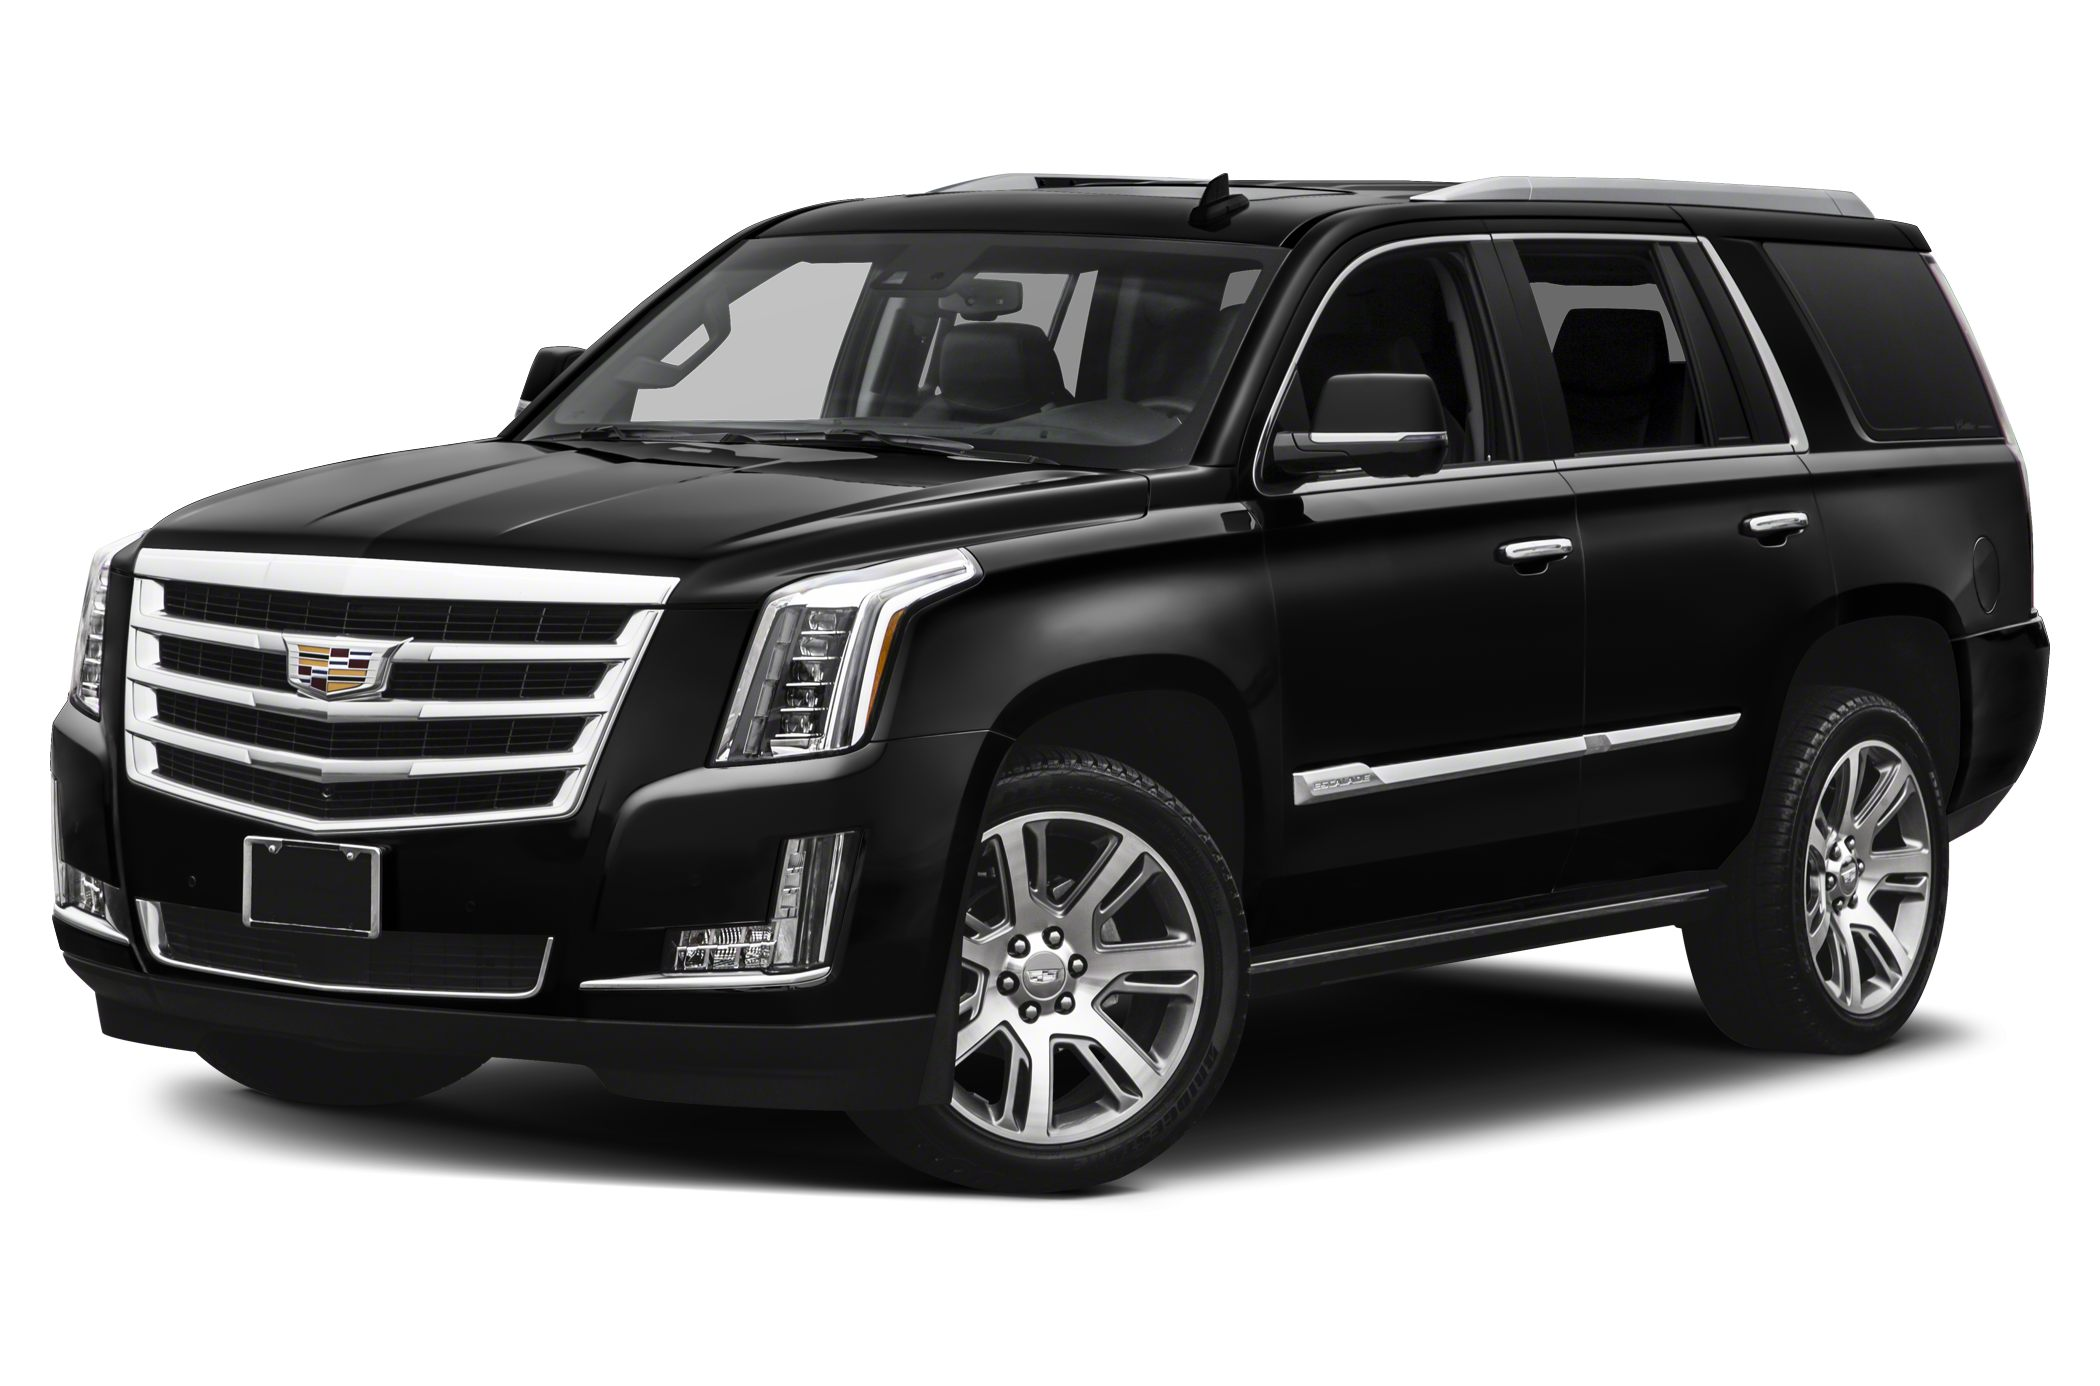 Premium Luxury 4x4 2017 Cadillac Escalade Photos